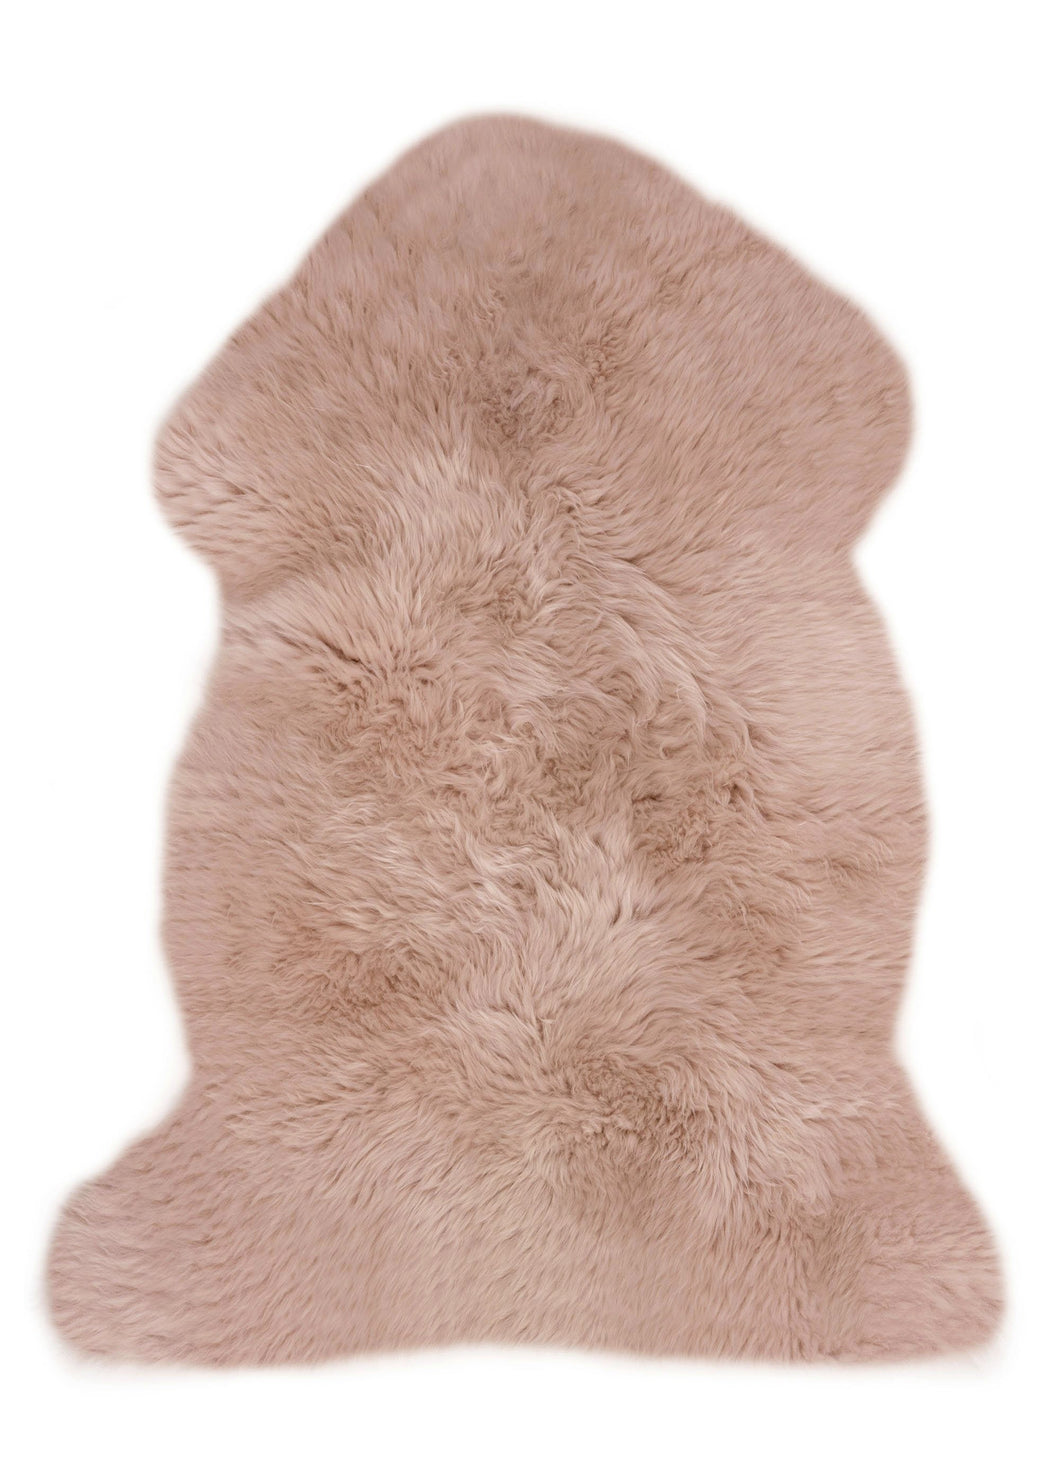 Binibamba's Large British Sheepskin Nursery Rugs in our Rose Colour Are Hand Finished in England And Have A Super Soft Pile That Makes Them Perfect For Your Baby's Nursery.